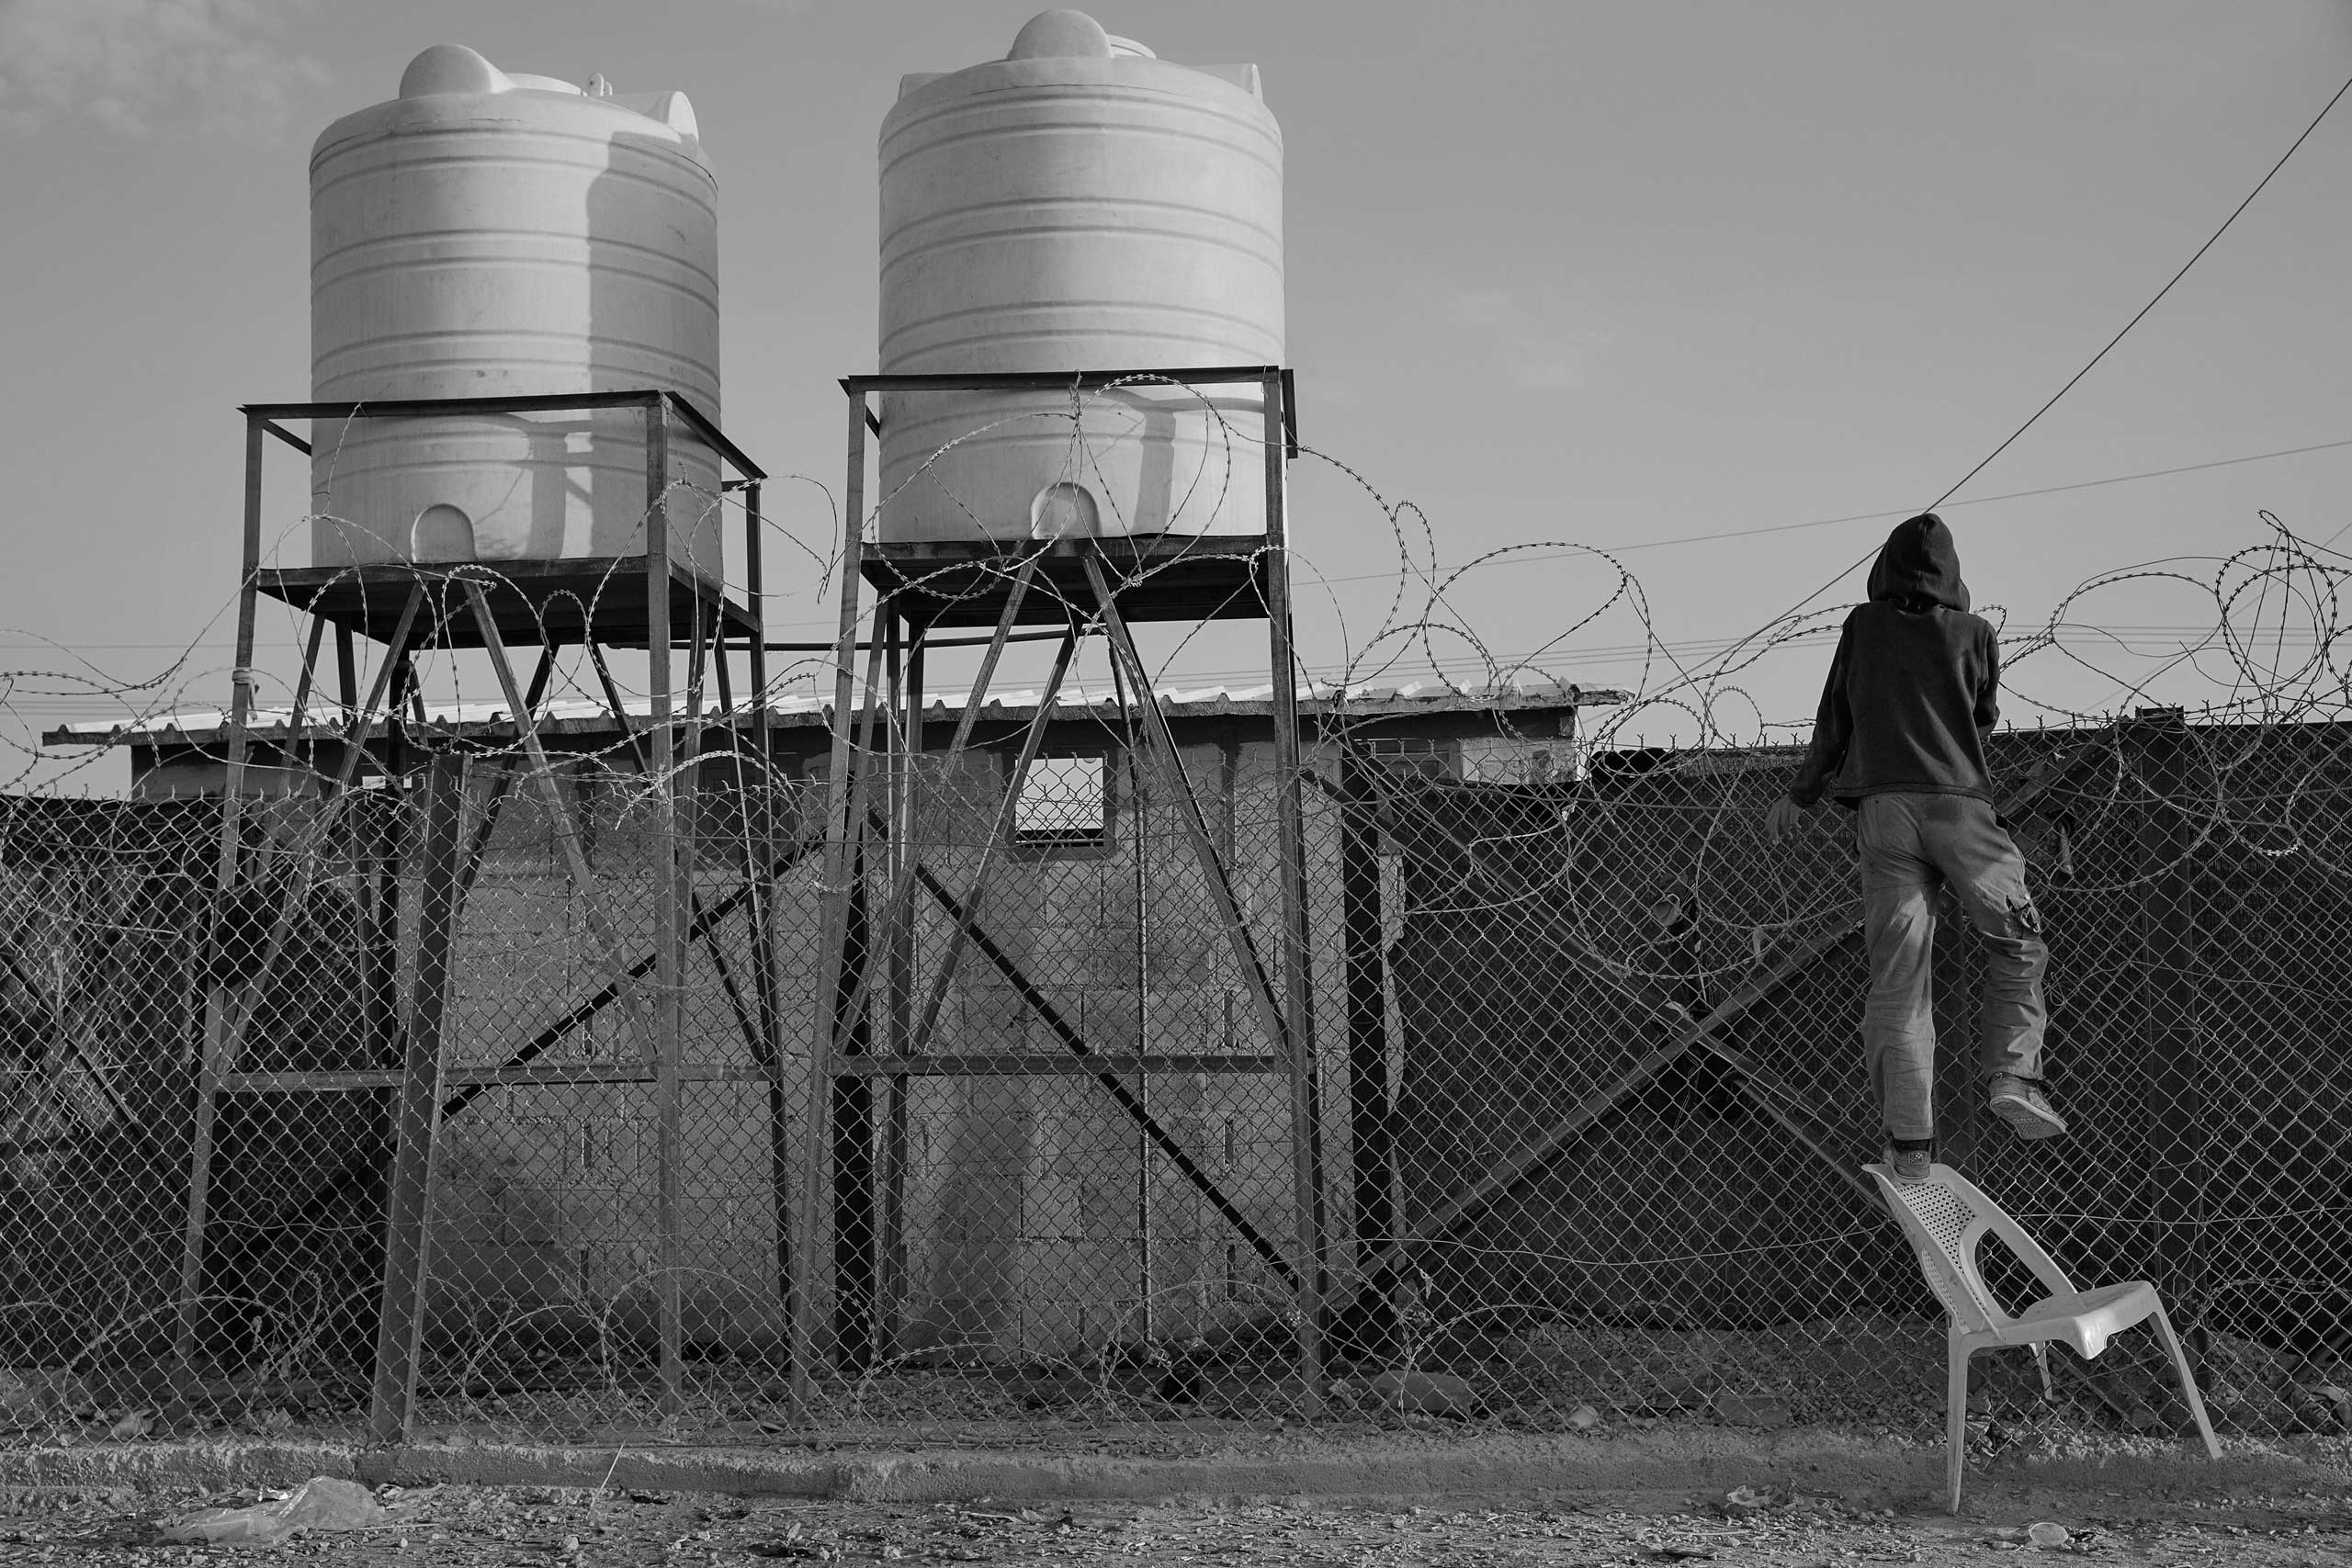 December 2013. Za'atari refugee camp, Jordan. Boys living in the camp climb the fence of the United Nations High Commissioner for Refugees' compound where newly arrived refugees are gathered in the early hours of the morning.